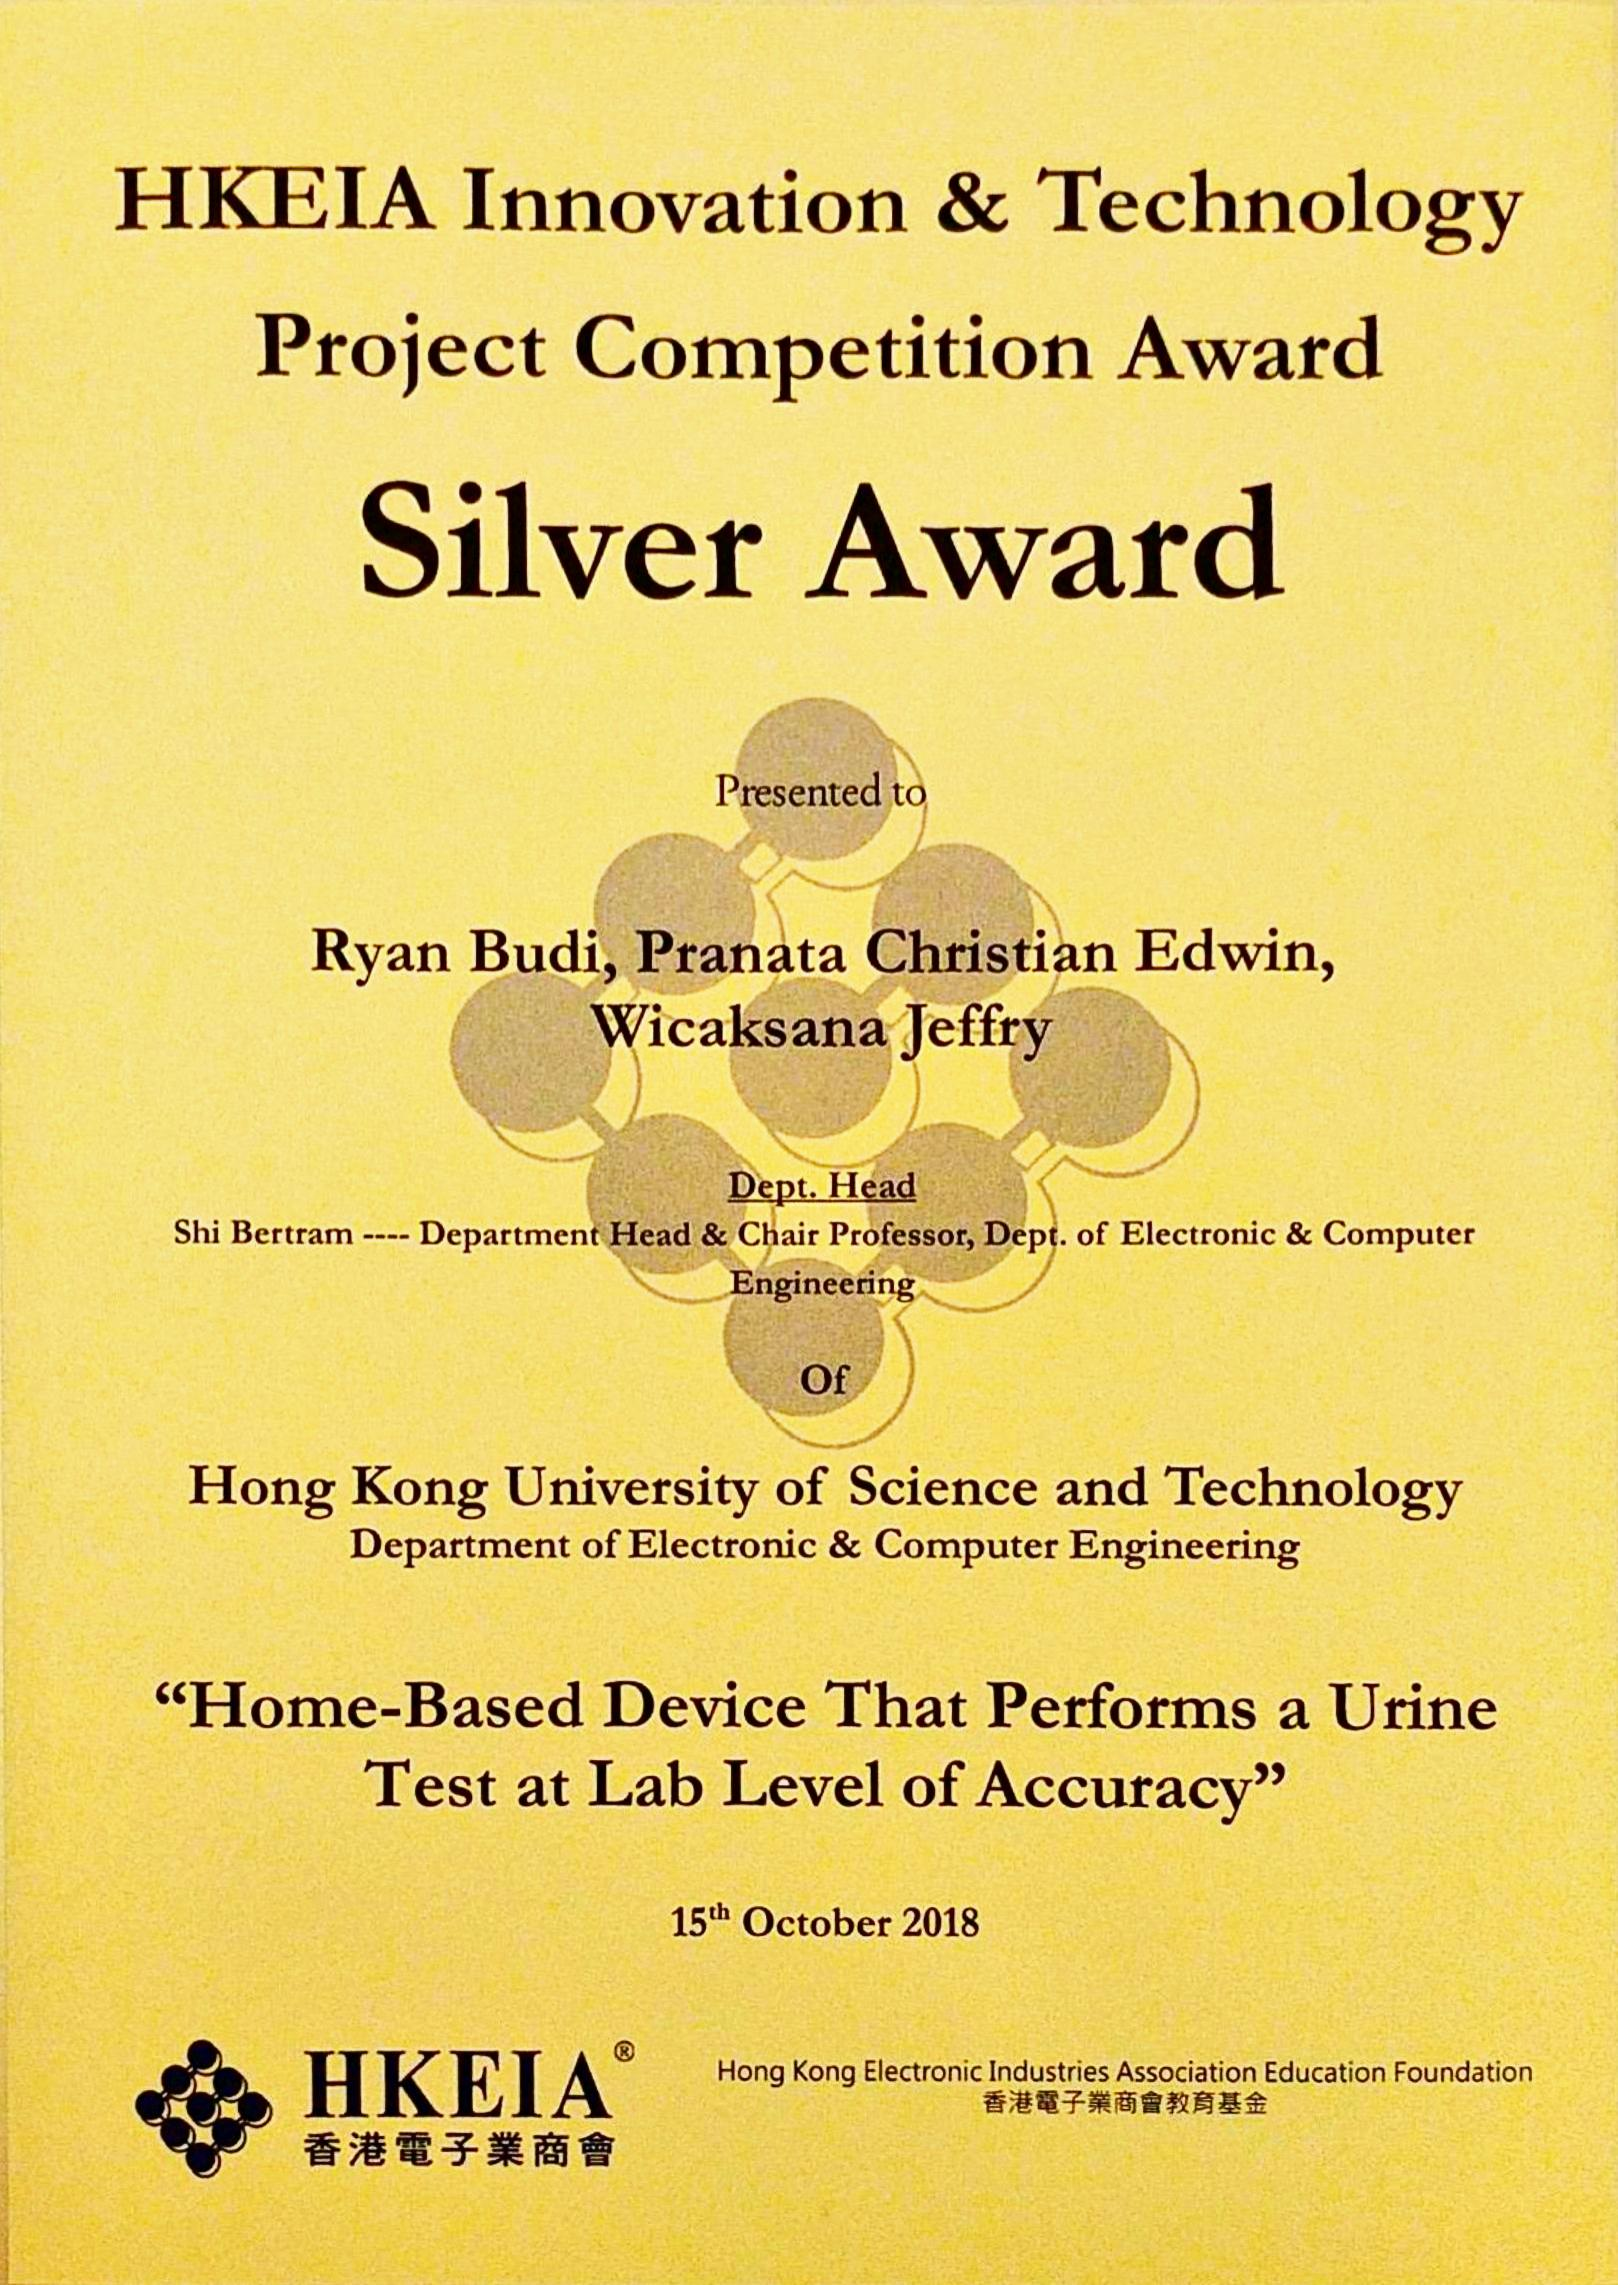 Final Year Project Won the Silver Prize of HKEIA Innovation & Technology Project Competition Award 2018